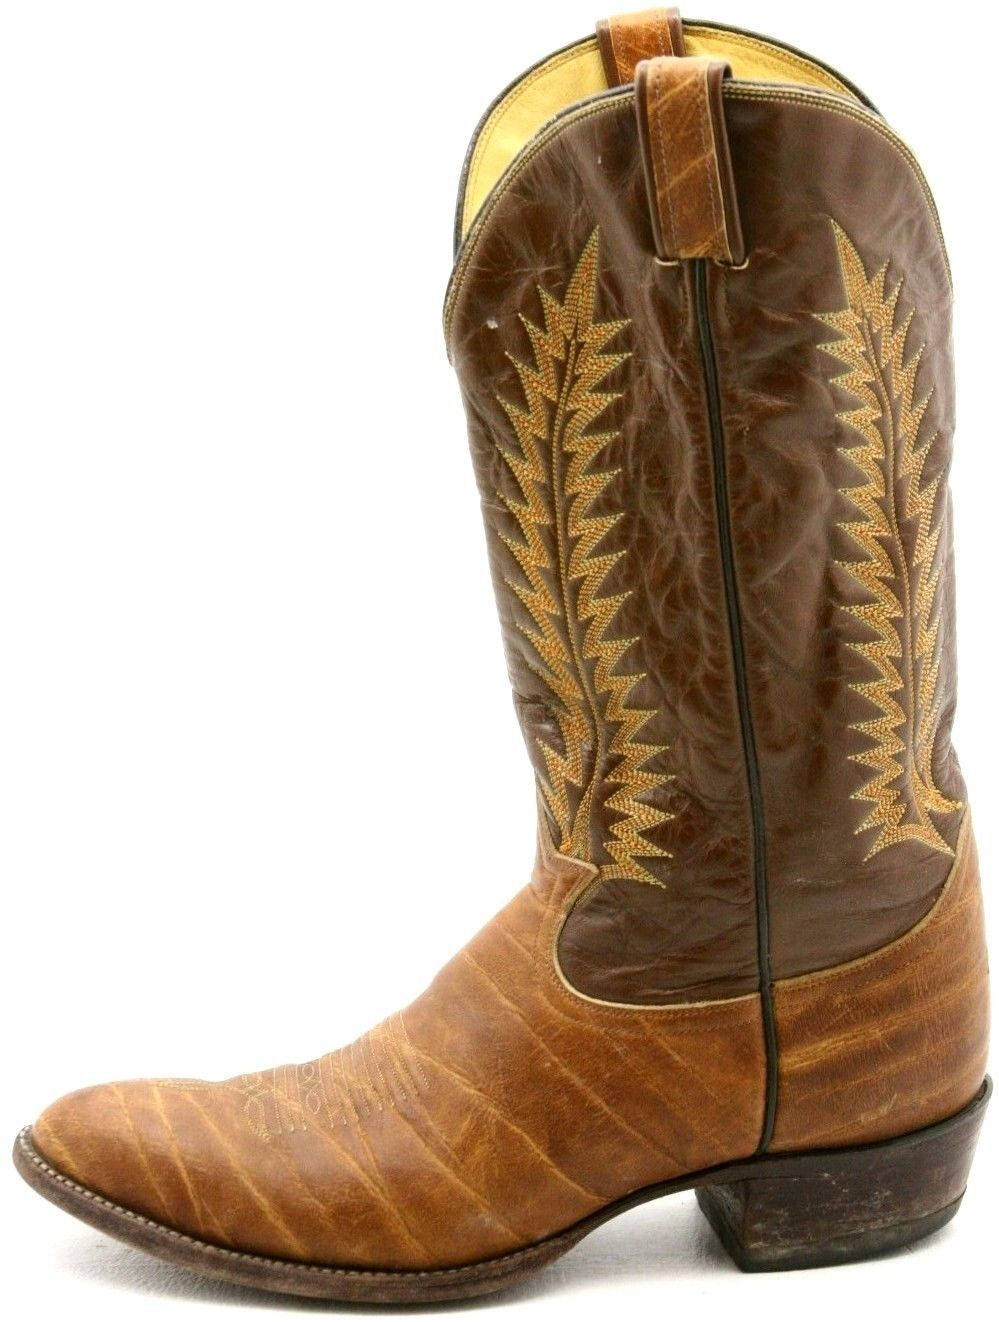 good selling incredible prices cheap prices Mens size 12 Tony Lama Cowboy Boots at www.shoehag.com ...